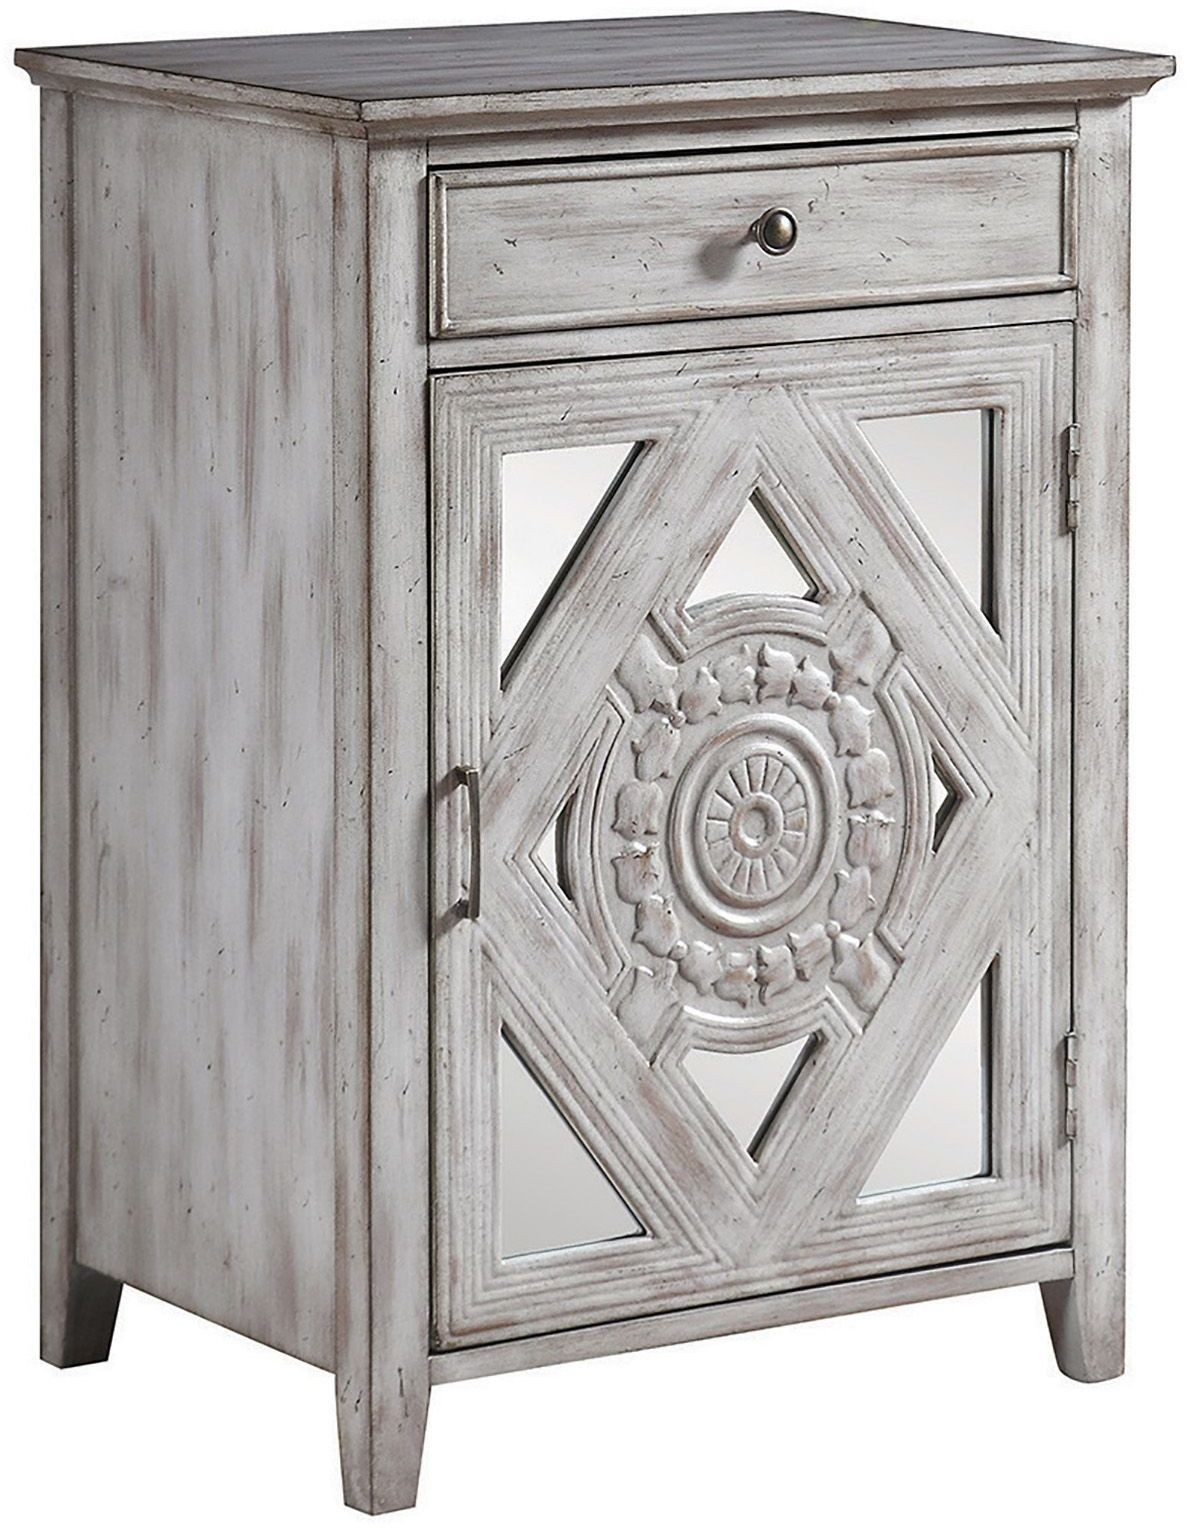 Distressed Gray Drawer Accent Cabinet from Coaster